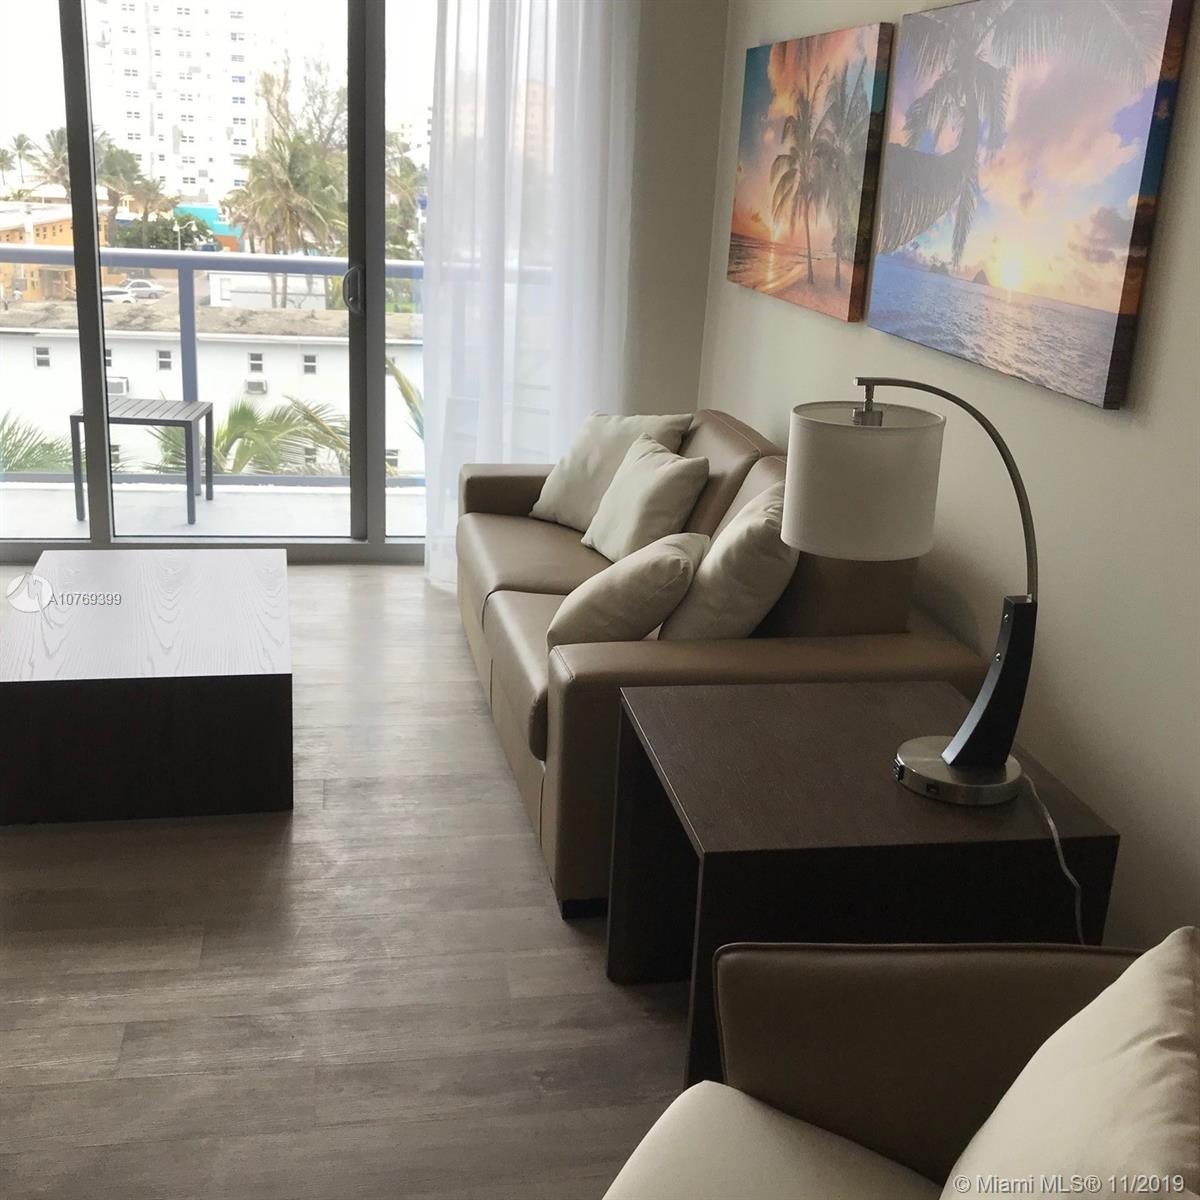 777 N Ocean Dr # N408, Hollywood, Florida 33019, 1 Bedroom Bedrooms, ,1 BathroomBathrooms,Residential,For Sale,777 N Ocean Dr # N408,A10769399